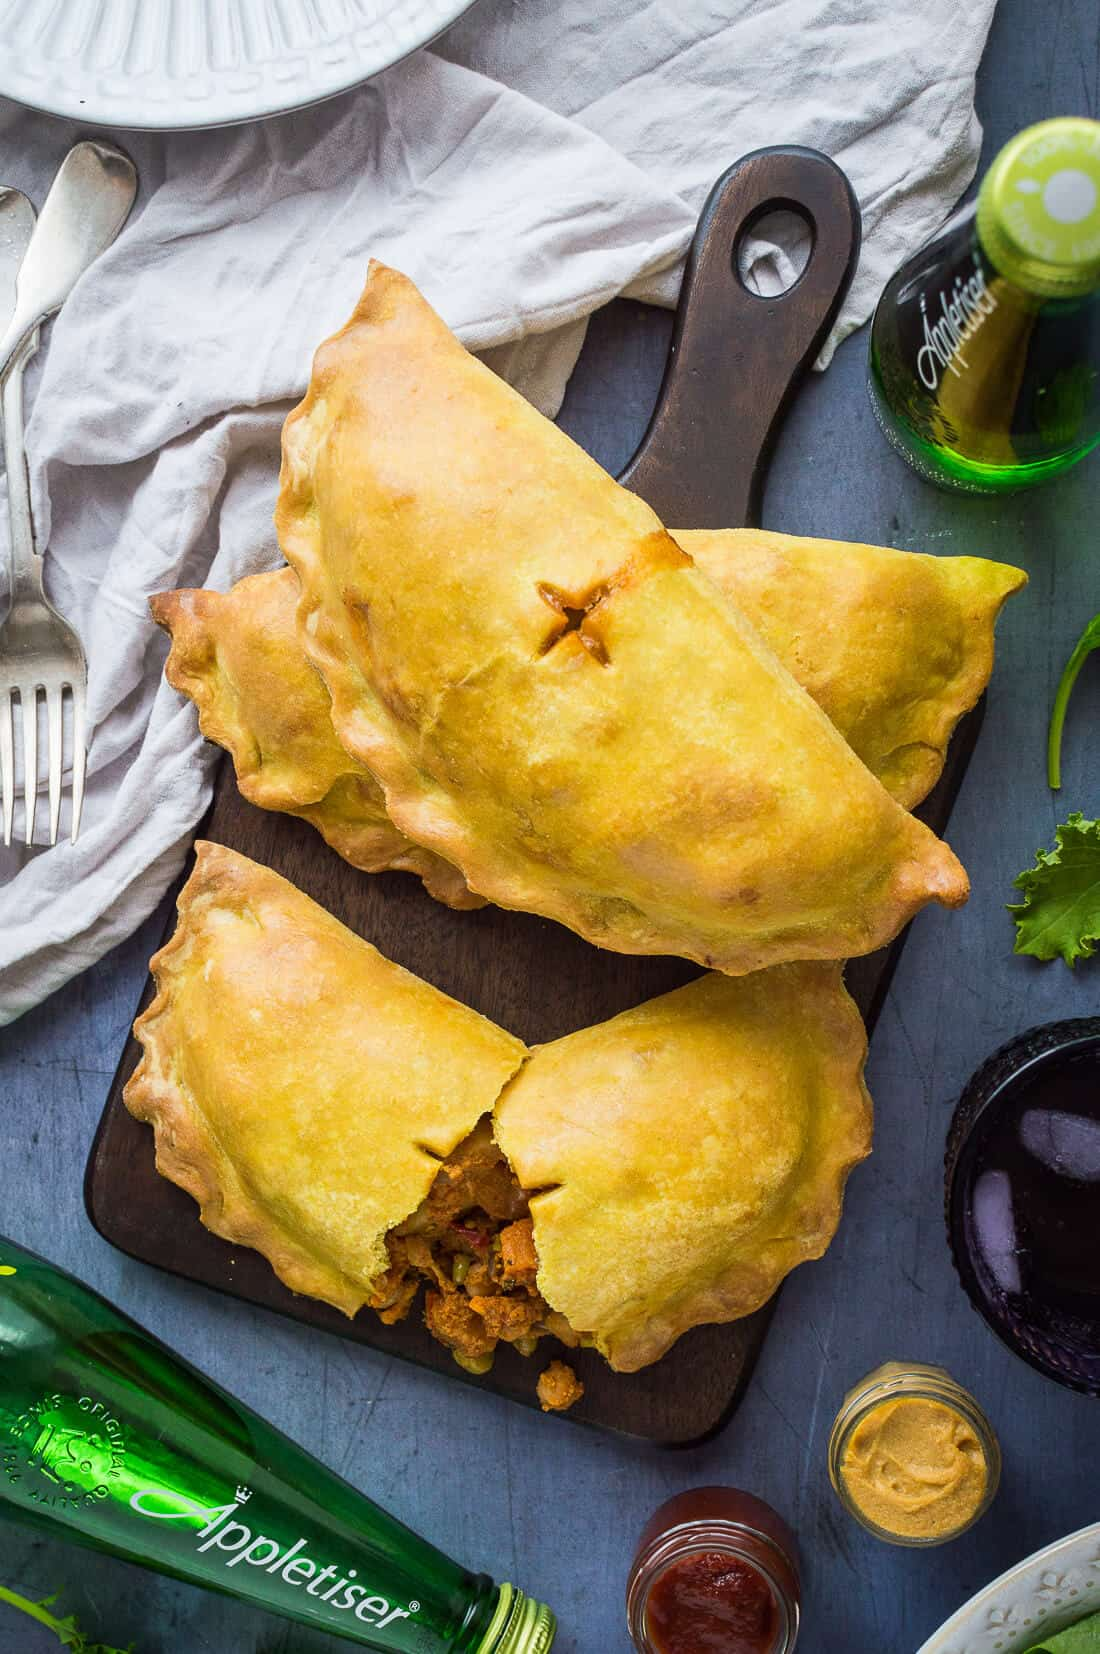 Curried vegetable pasties on awooden board with bottles of Appletiser.